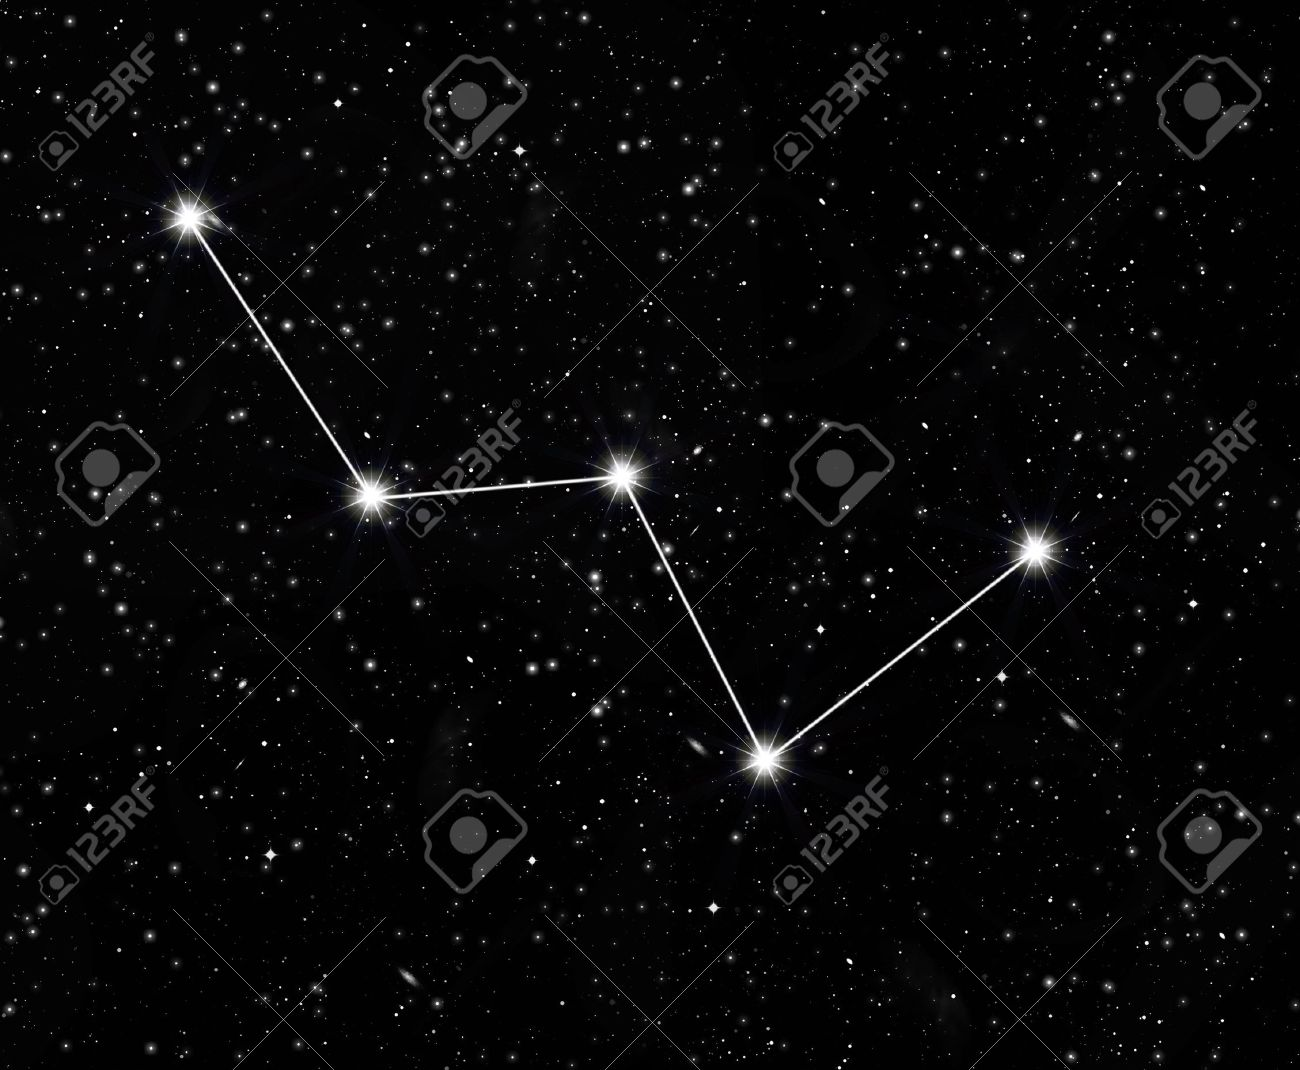 constellation Cassiopeia against the starry sky - 38492354